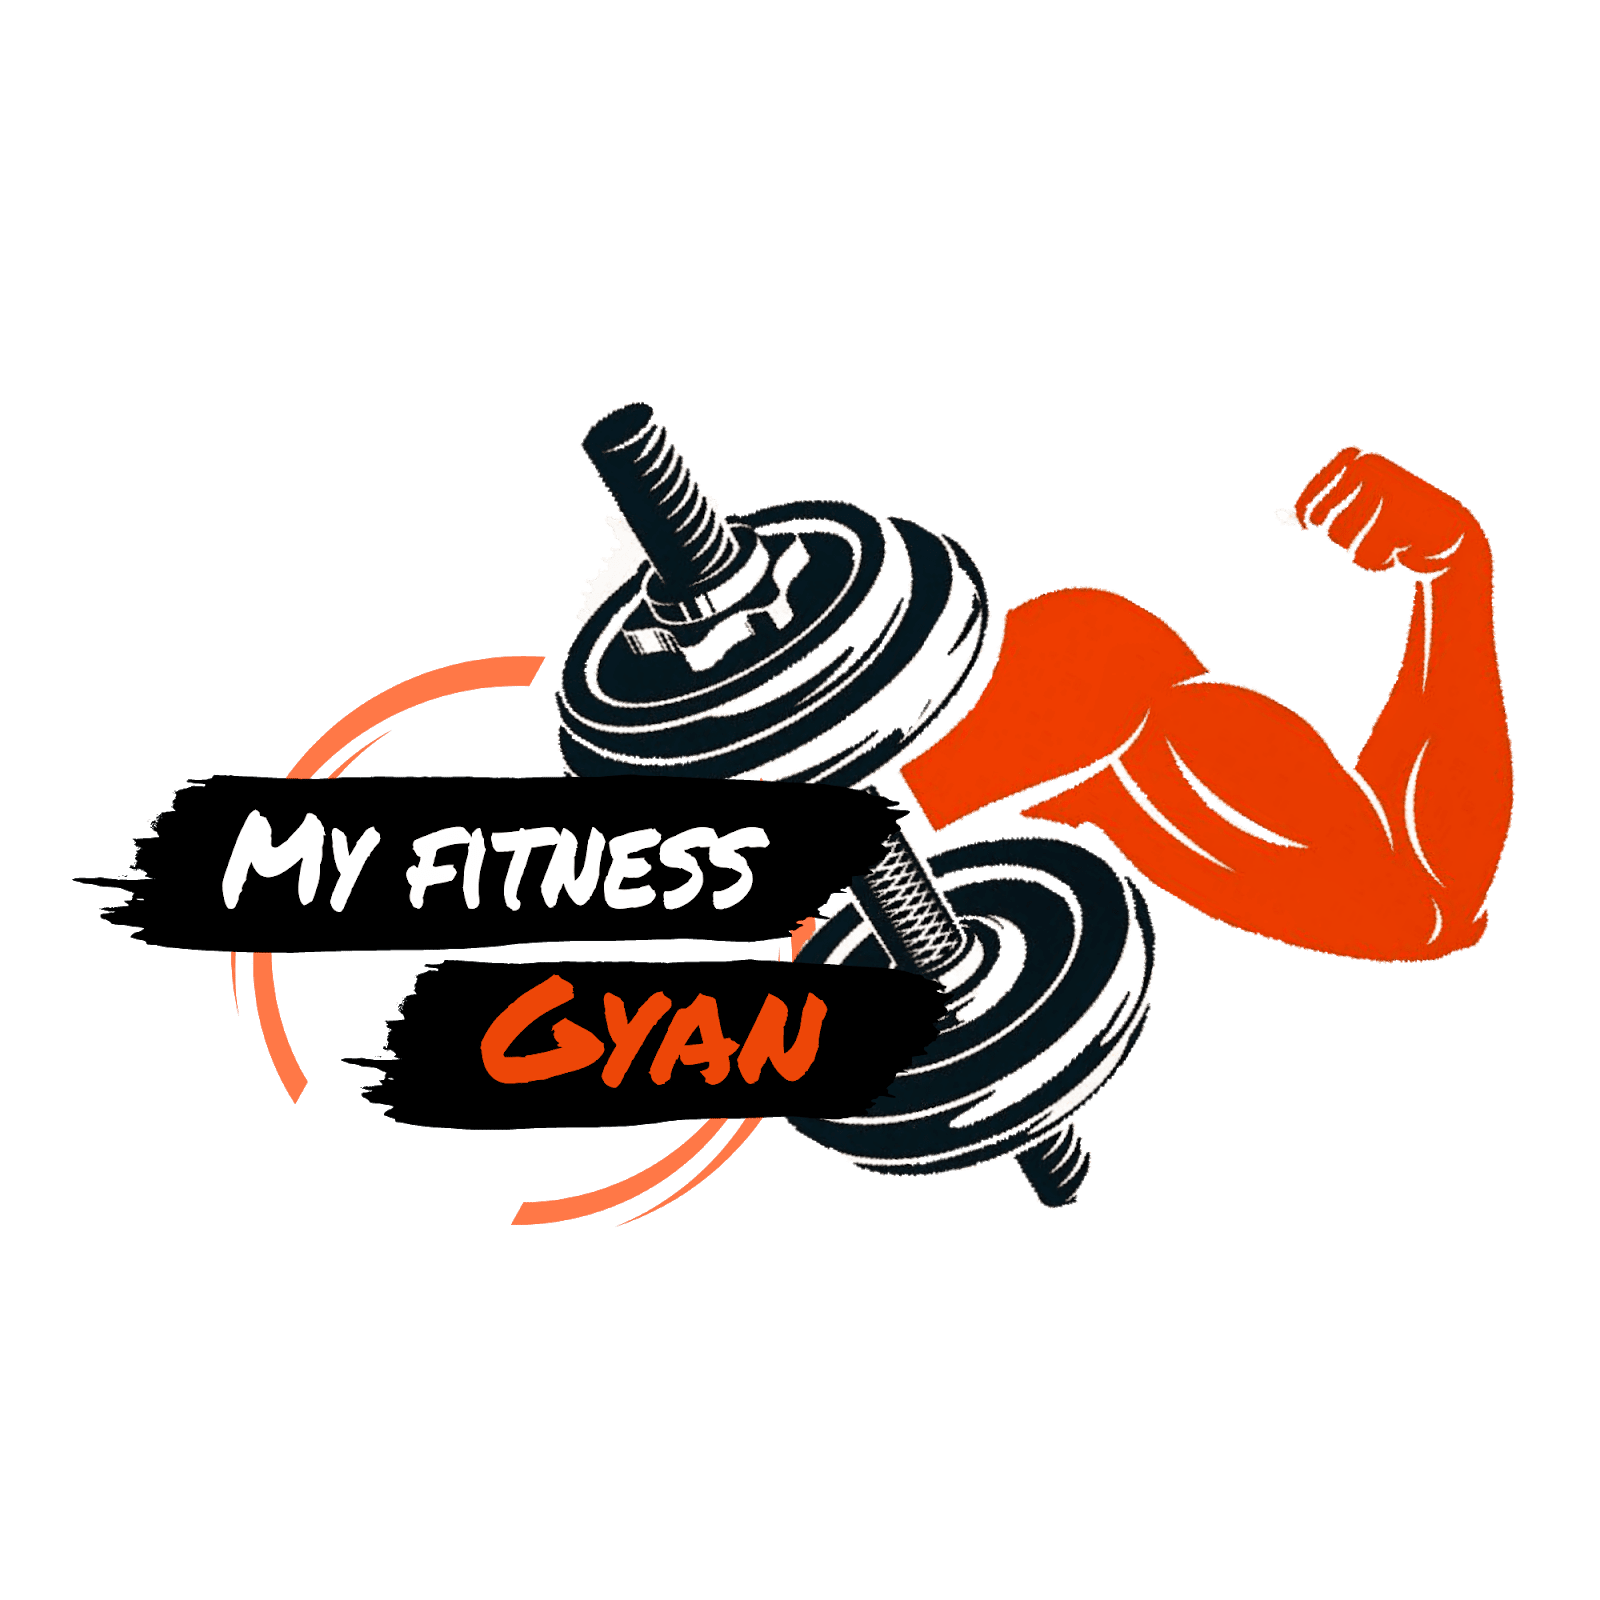 MY FITNESS GYAAN